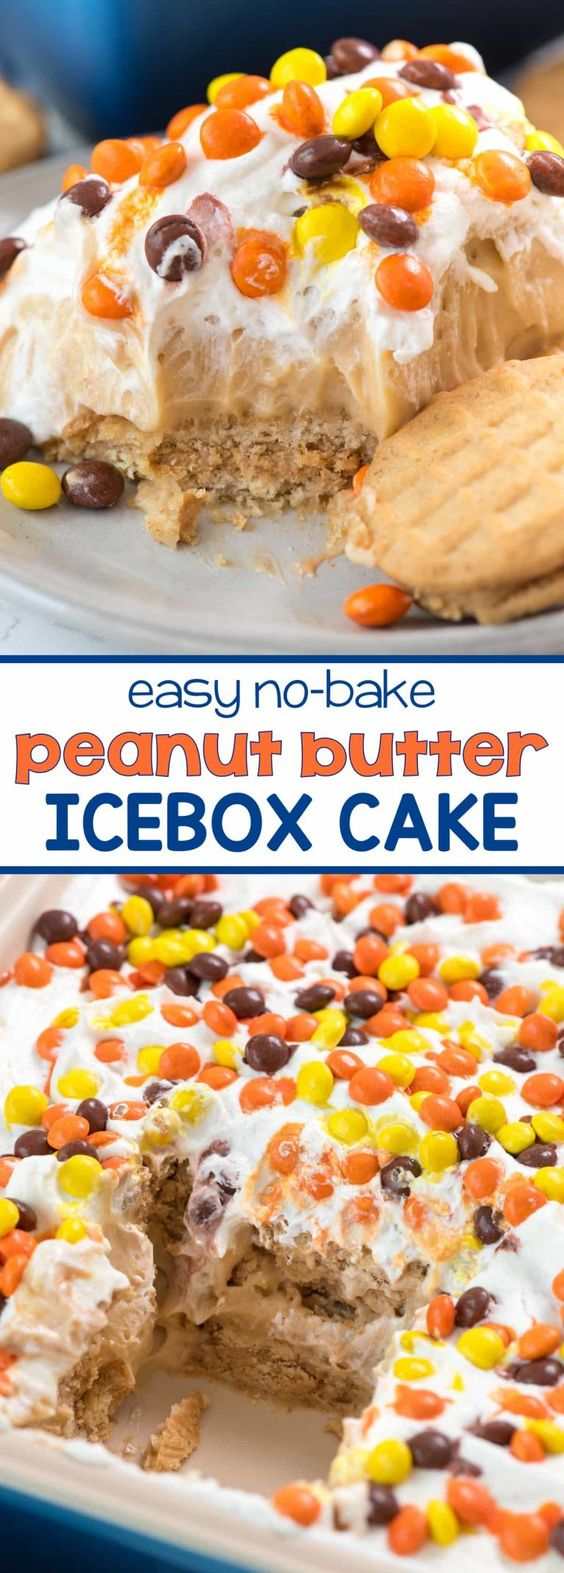 No Bake Peanut Butter Icebox Cake